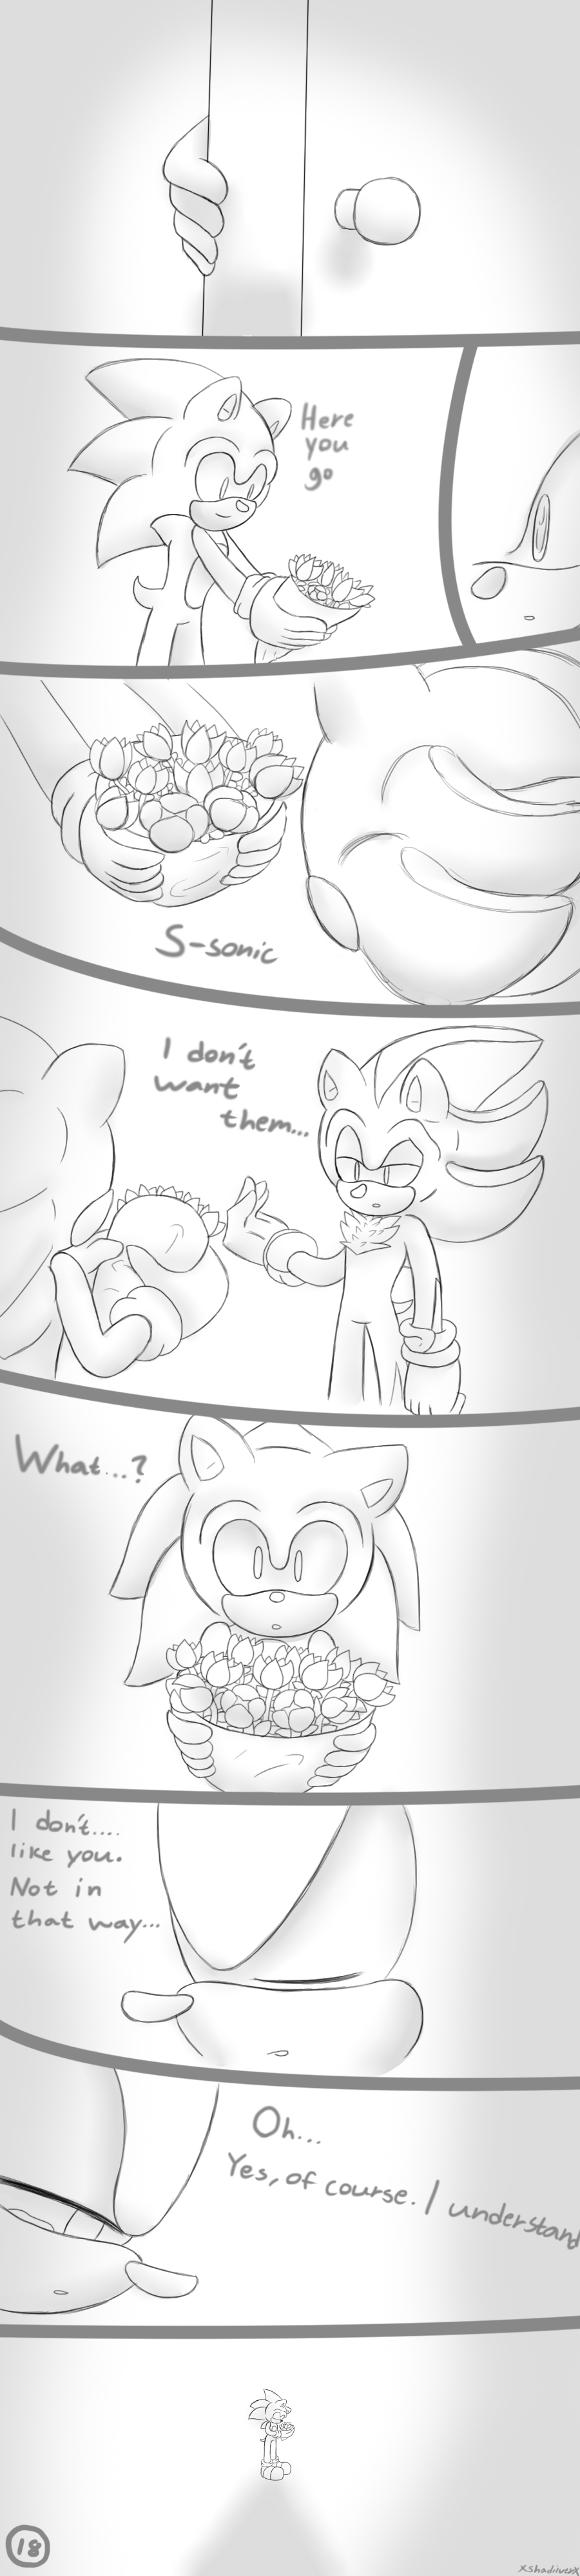 Sonadilver - Lost in Limbo - 18 by xShadilverx